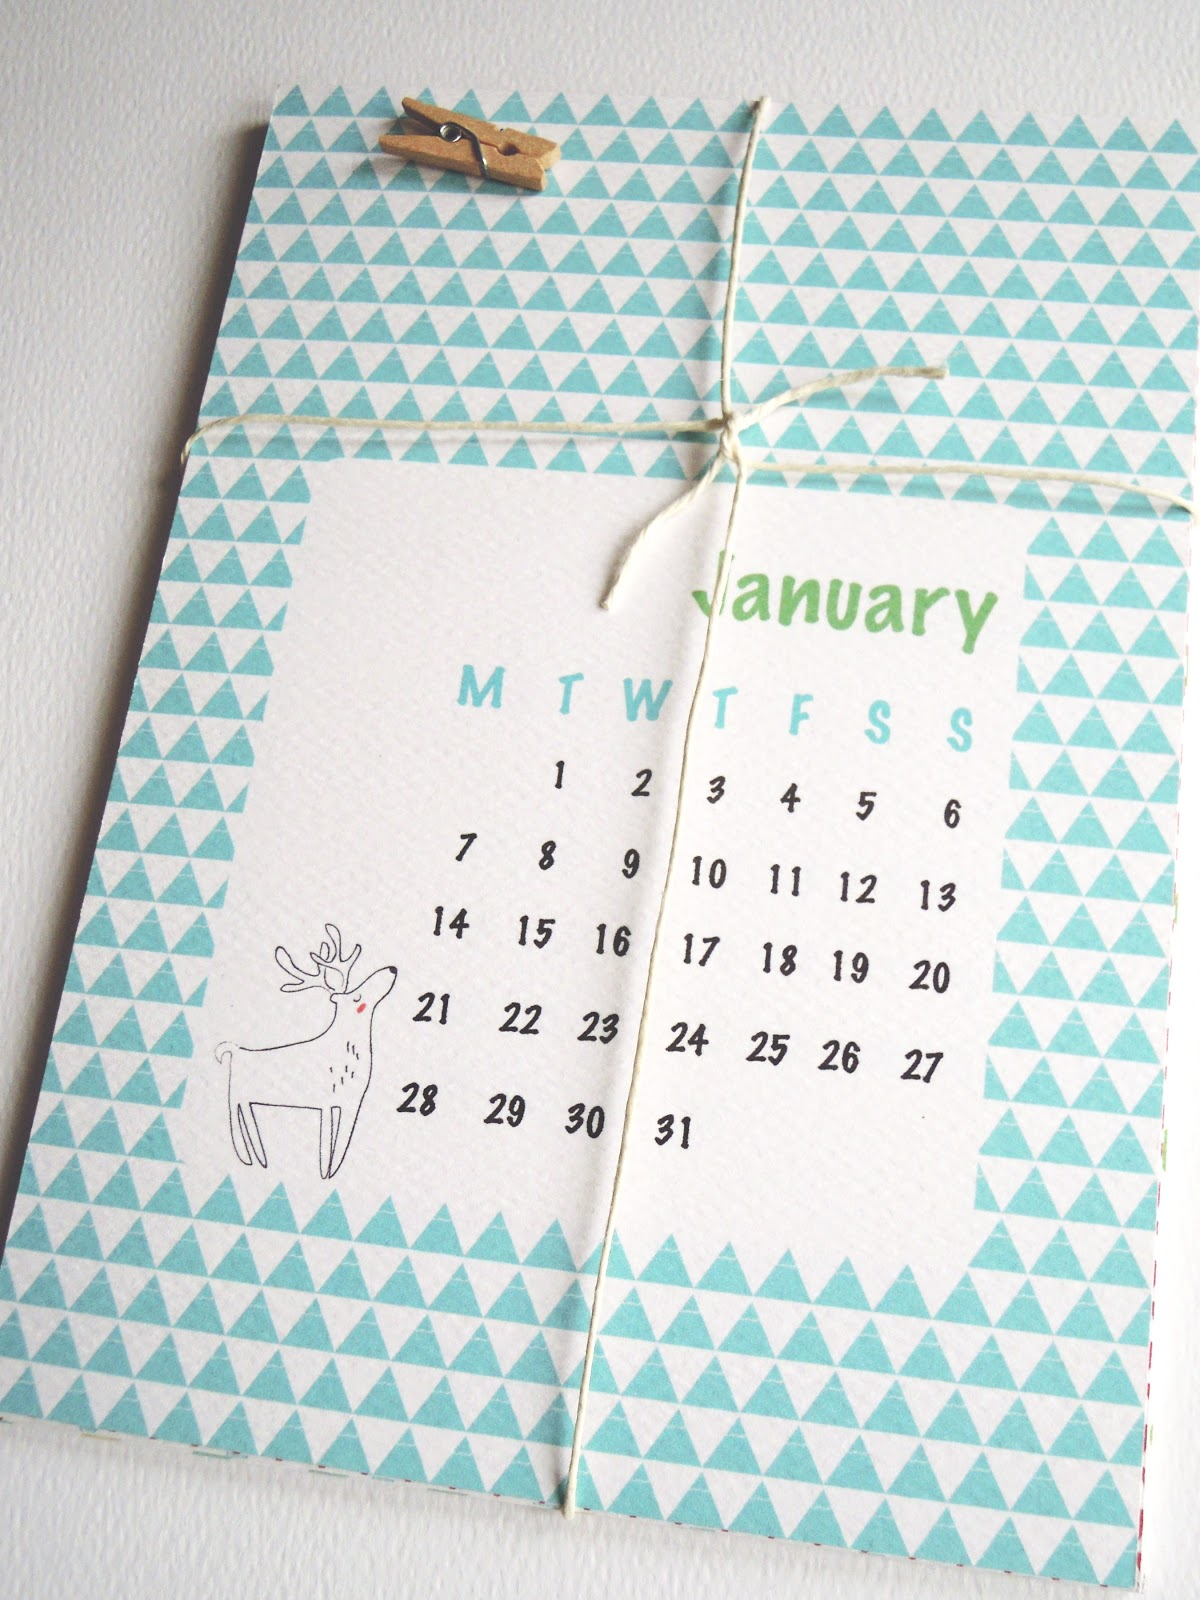 Handmade Calendar Design : Mi ed design handmade illustrated calendar now on sale